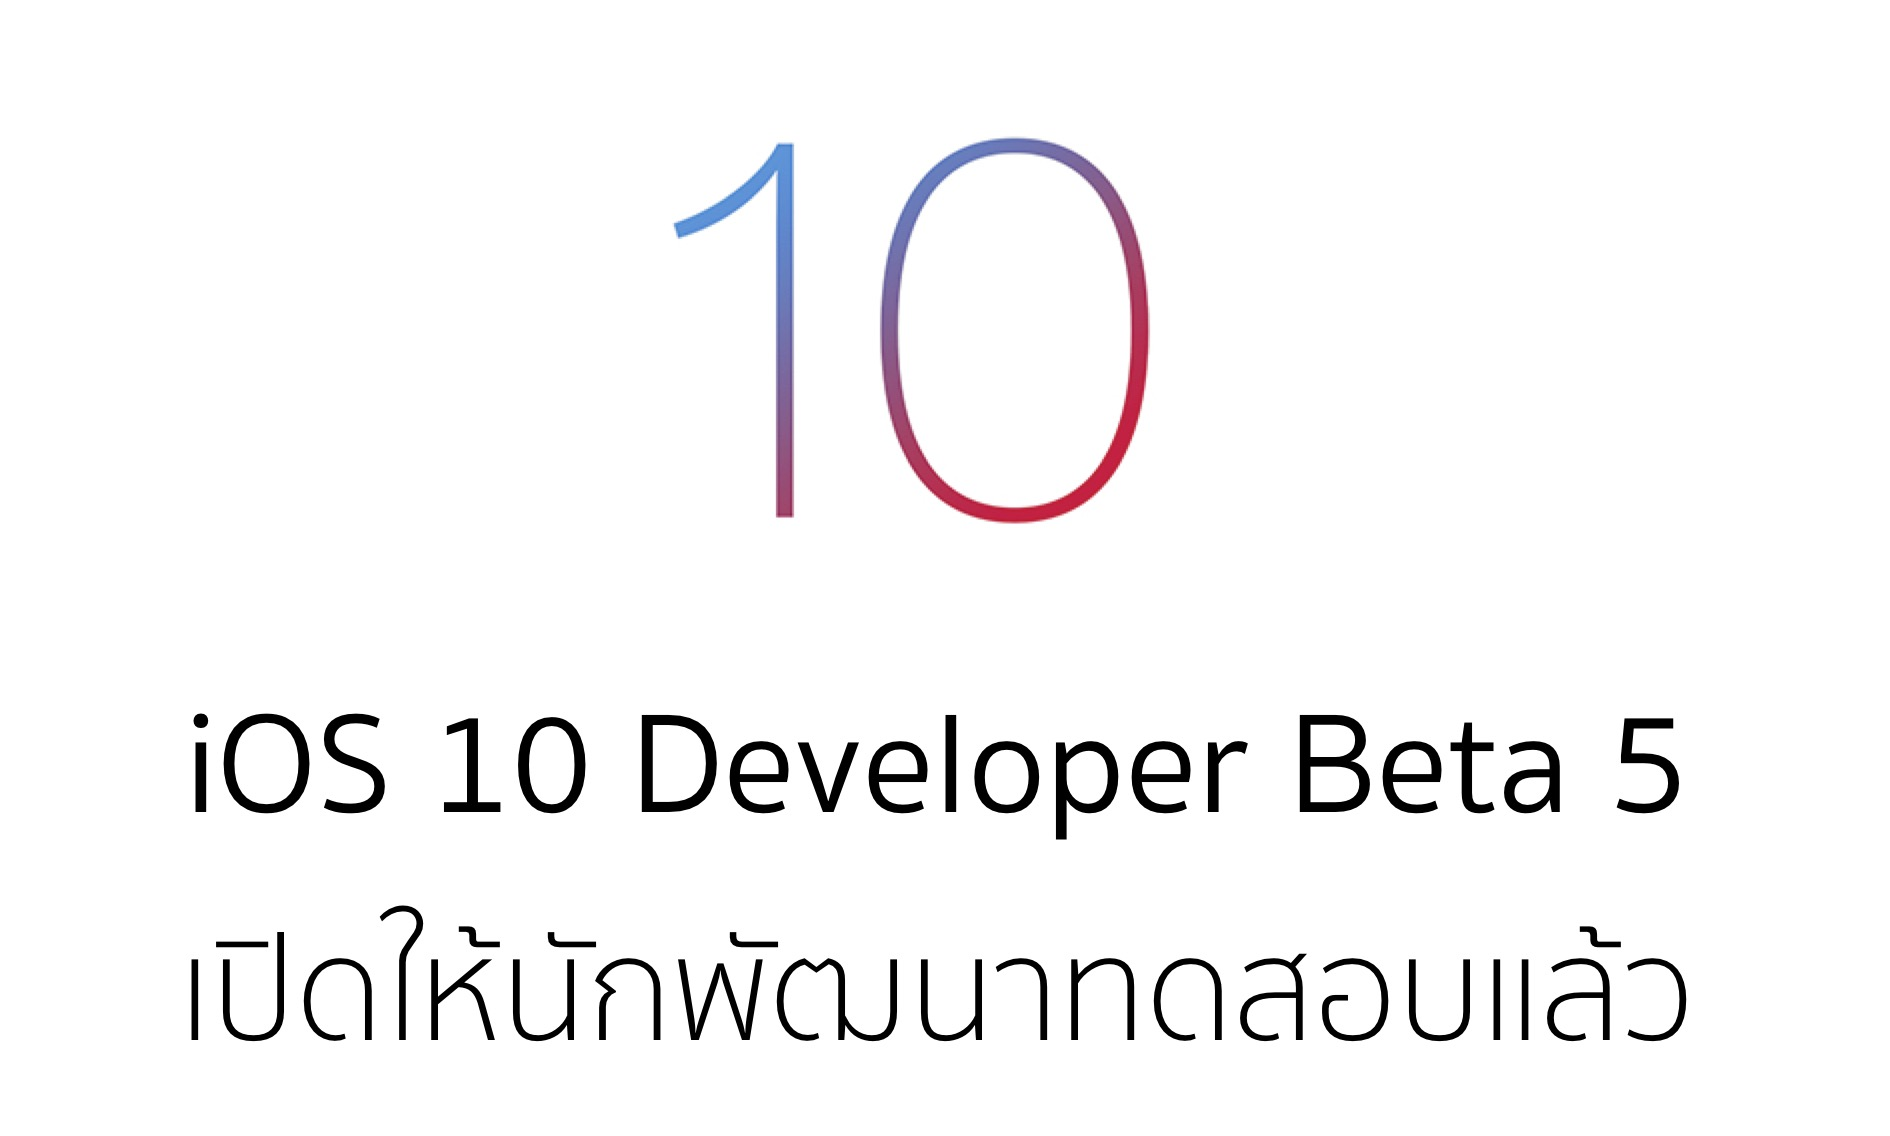 ios 10 developer beta 5